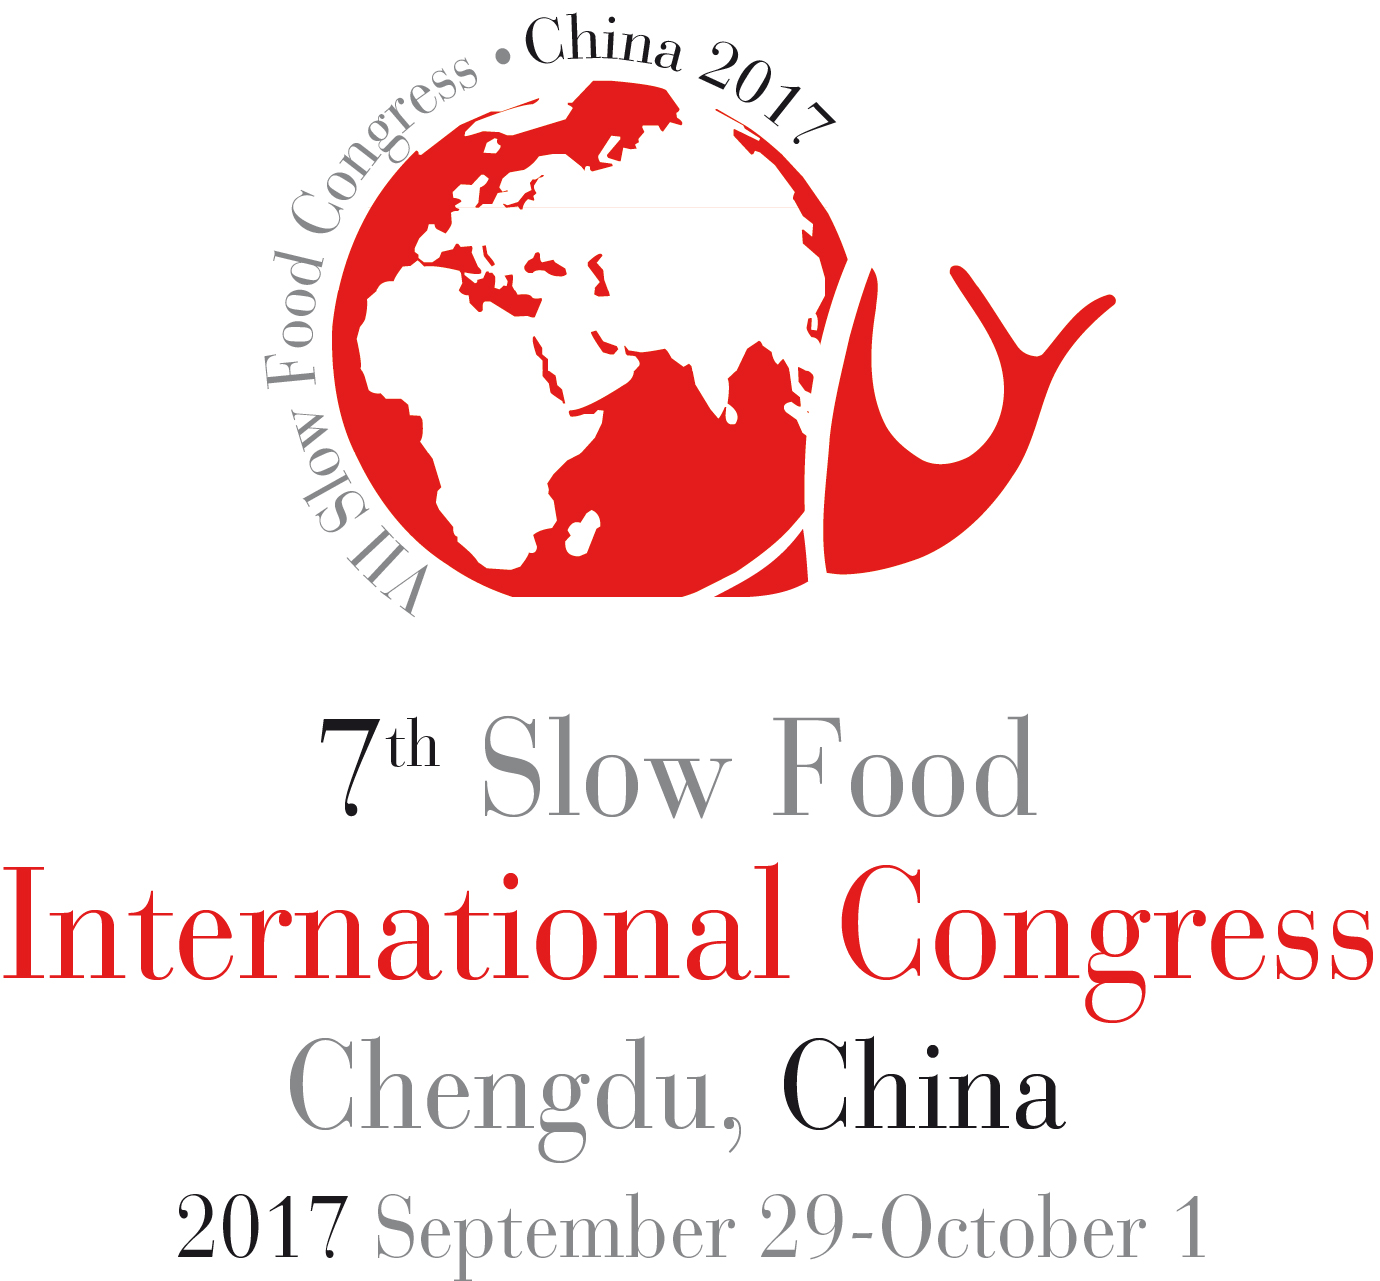 Slow Food International Congress International Events Slow Food